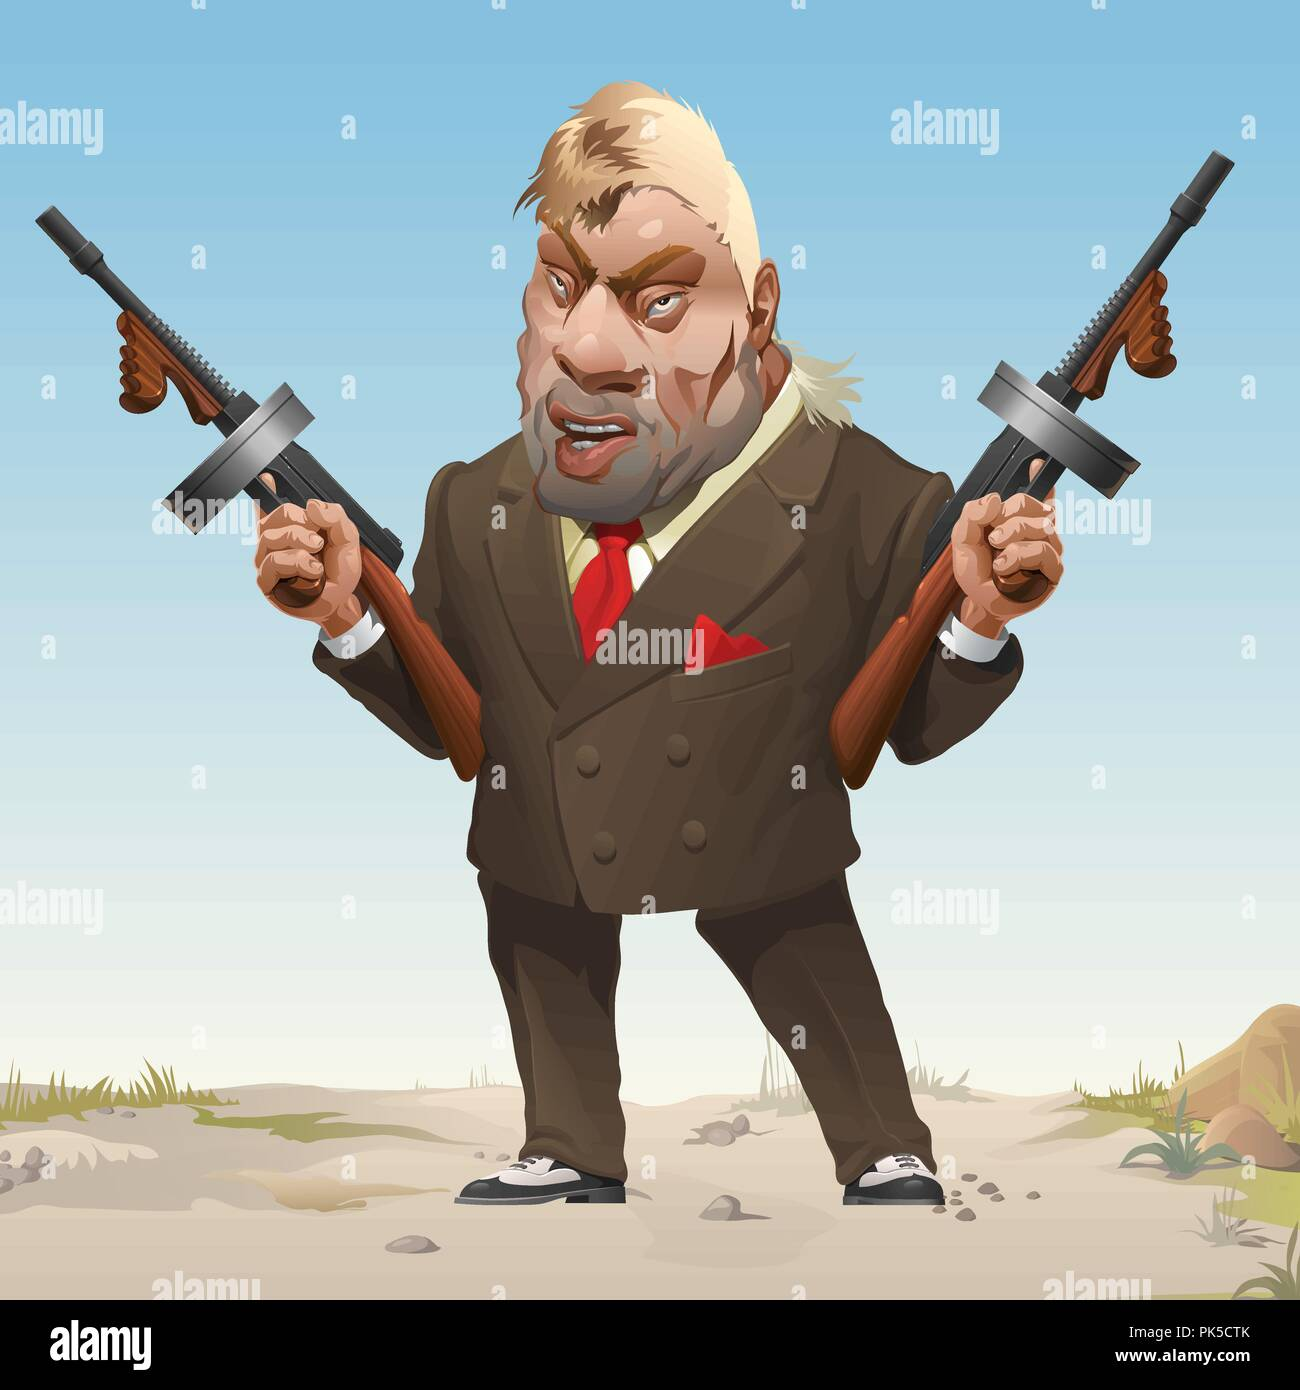 Gangster in stylish business fashion suit and sneakers armed with two machine guns. Bandit of wild West. Serious criminal unshaven male with a blonde hair threatens a firearm. Vector cartoon close-up. - Stock Image